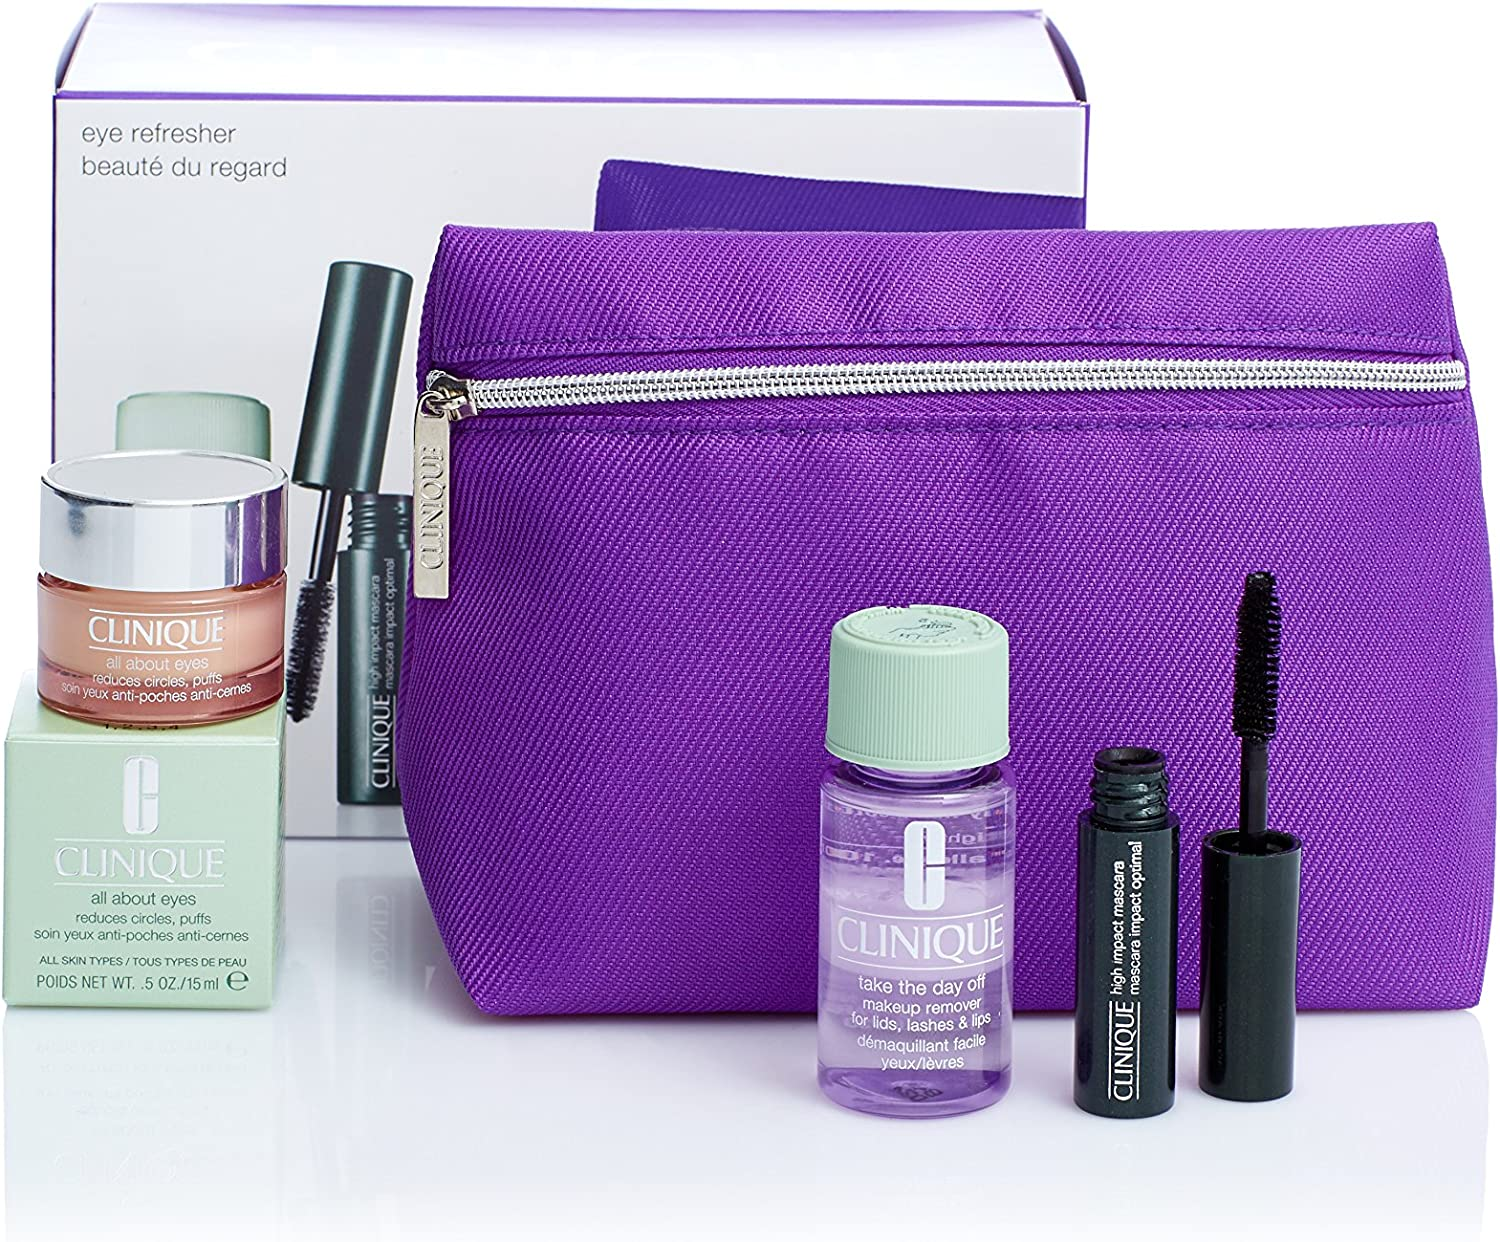 Clinique Pack All About Eyes Rich 15 ml + High Impact Mask Mini + Take The Day Off 30 ml: Amazon.es: Alimentación y bebidas